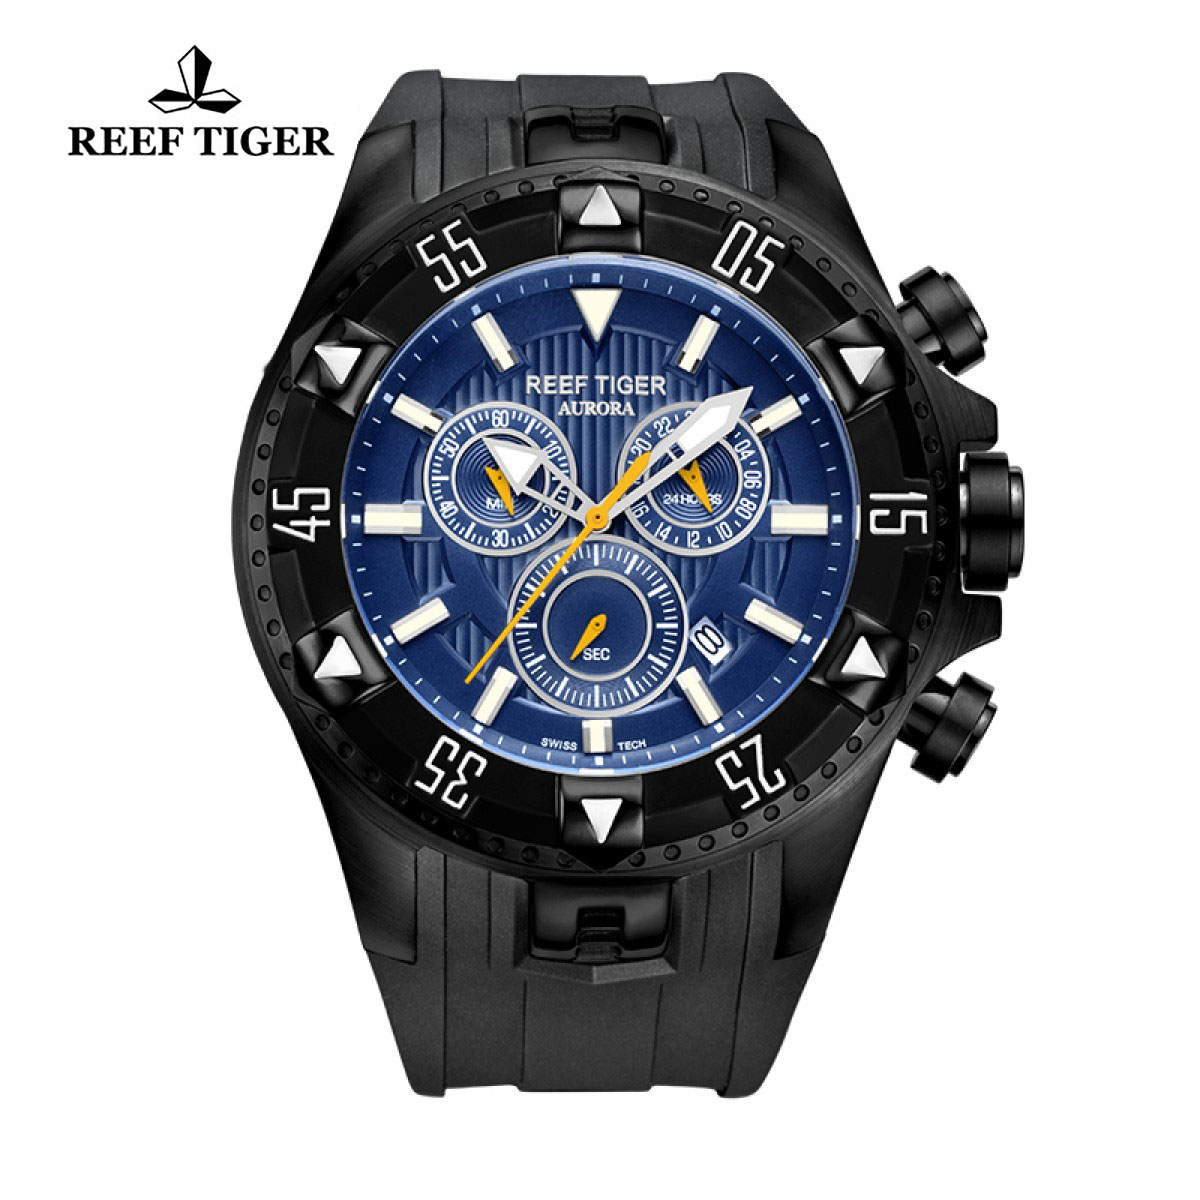 Reef Tiger Hercules Sport Watches Chronograph Black PVD Case Blue Dial Watch RGA303-BLB